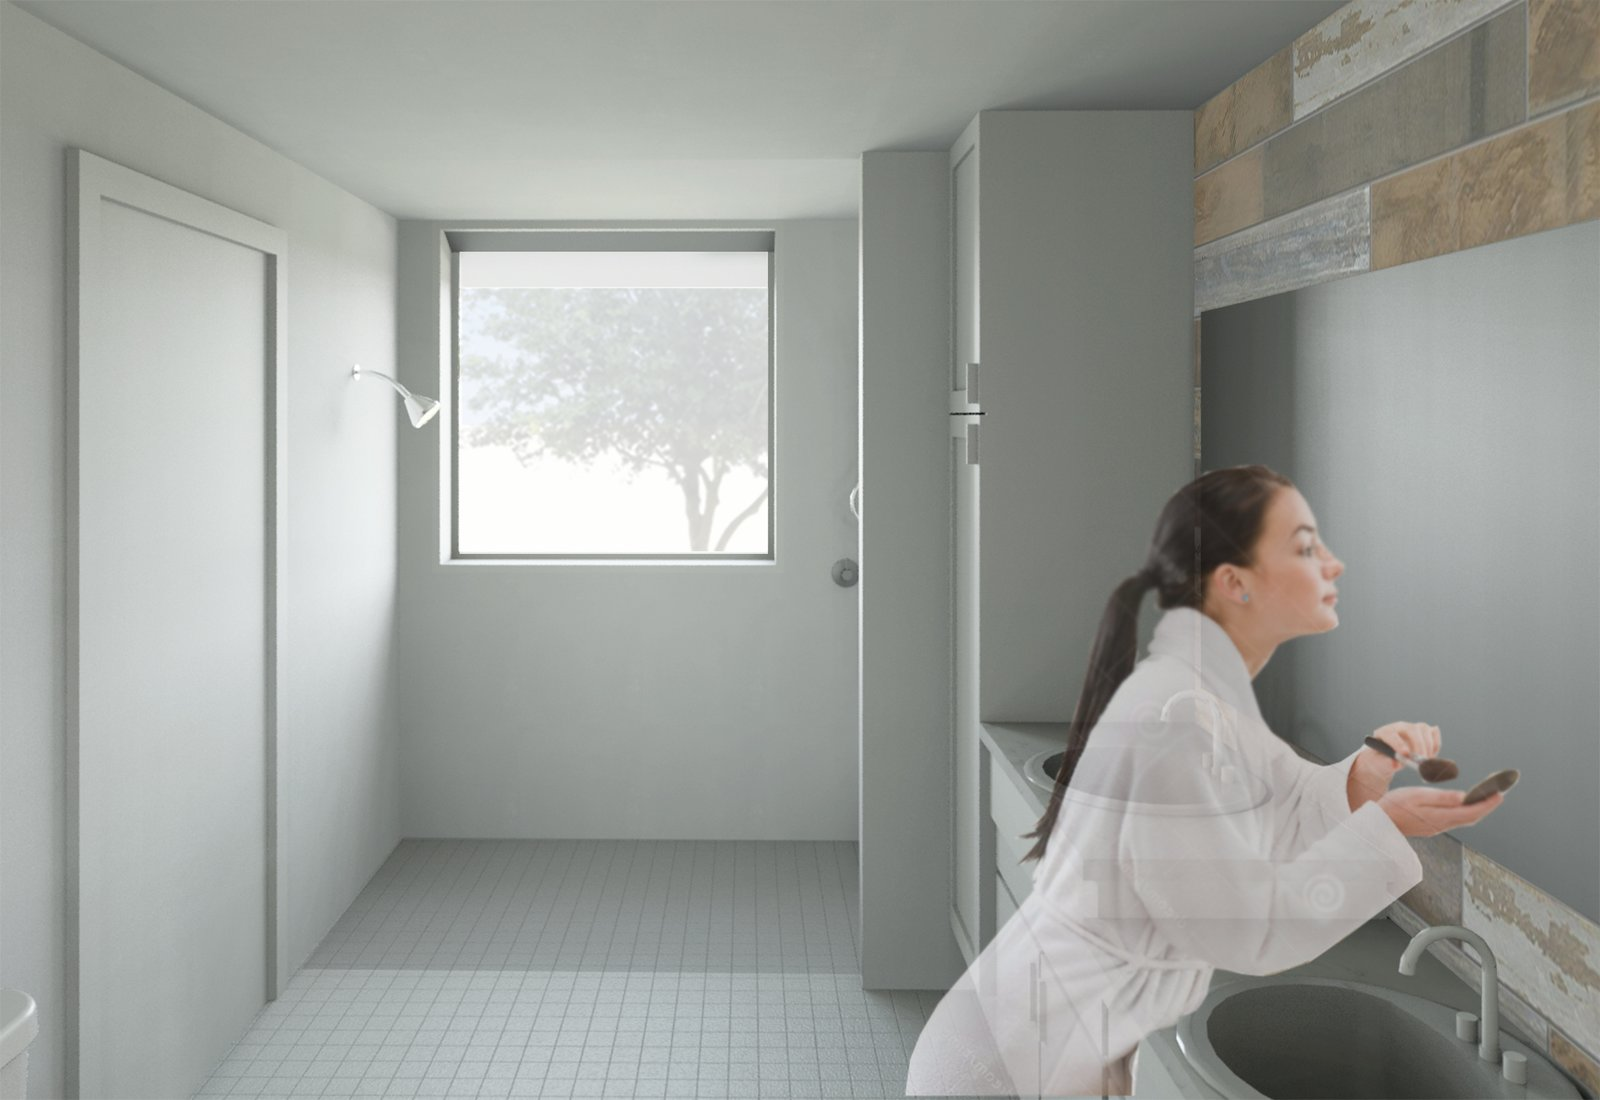 The bathroom was designed with an open layout to provide enough space for someone in a wheelchair to operate comfortably.